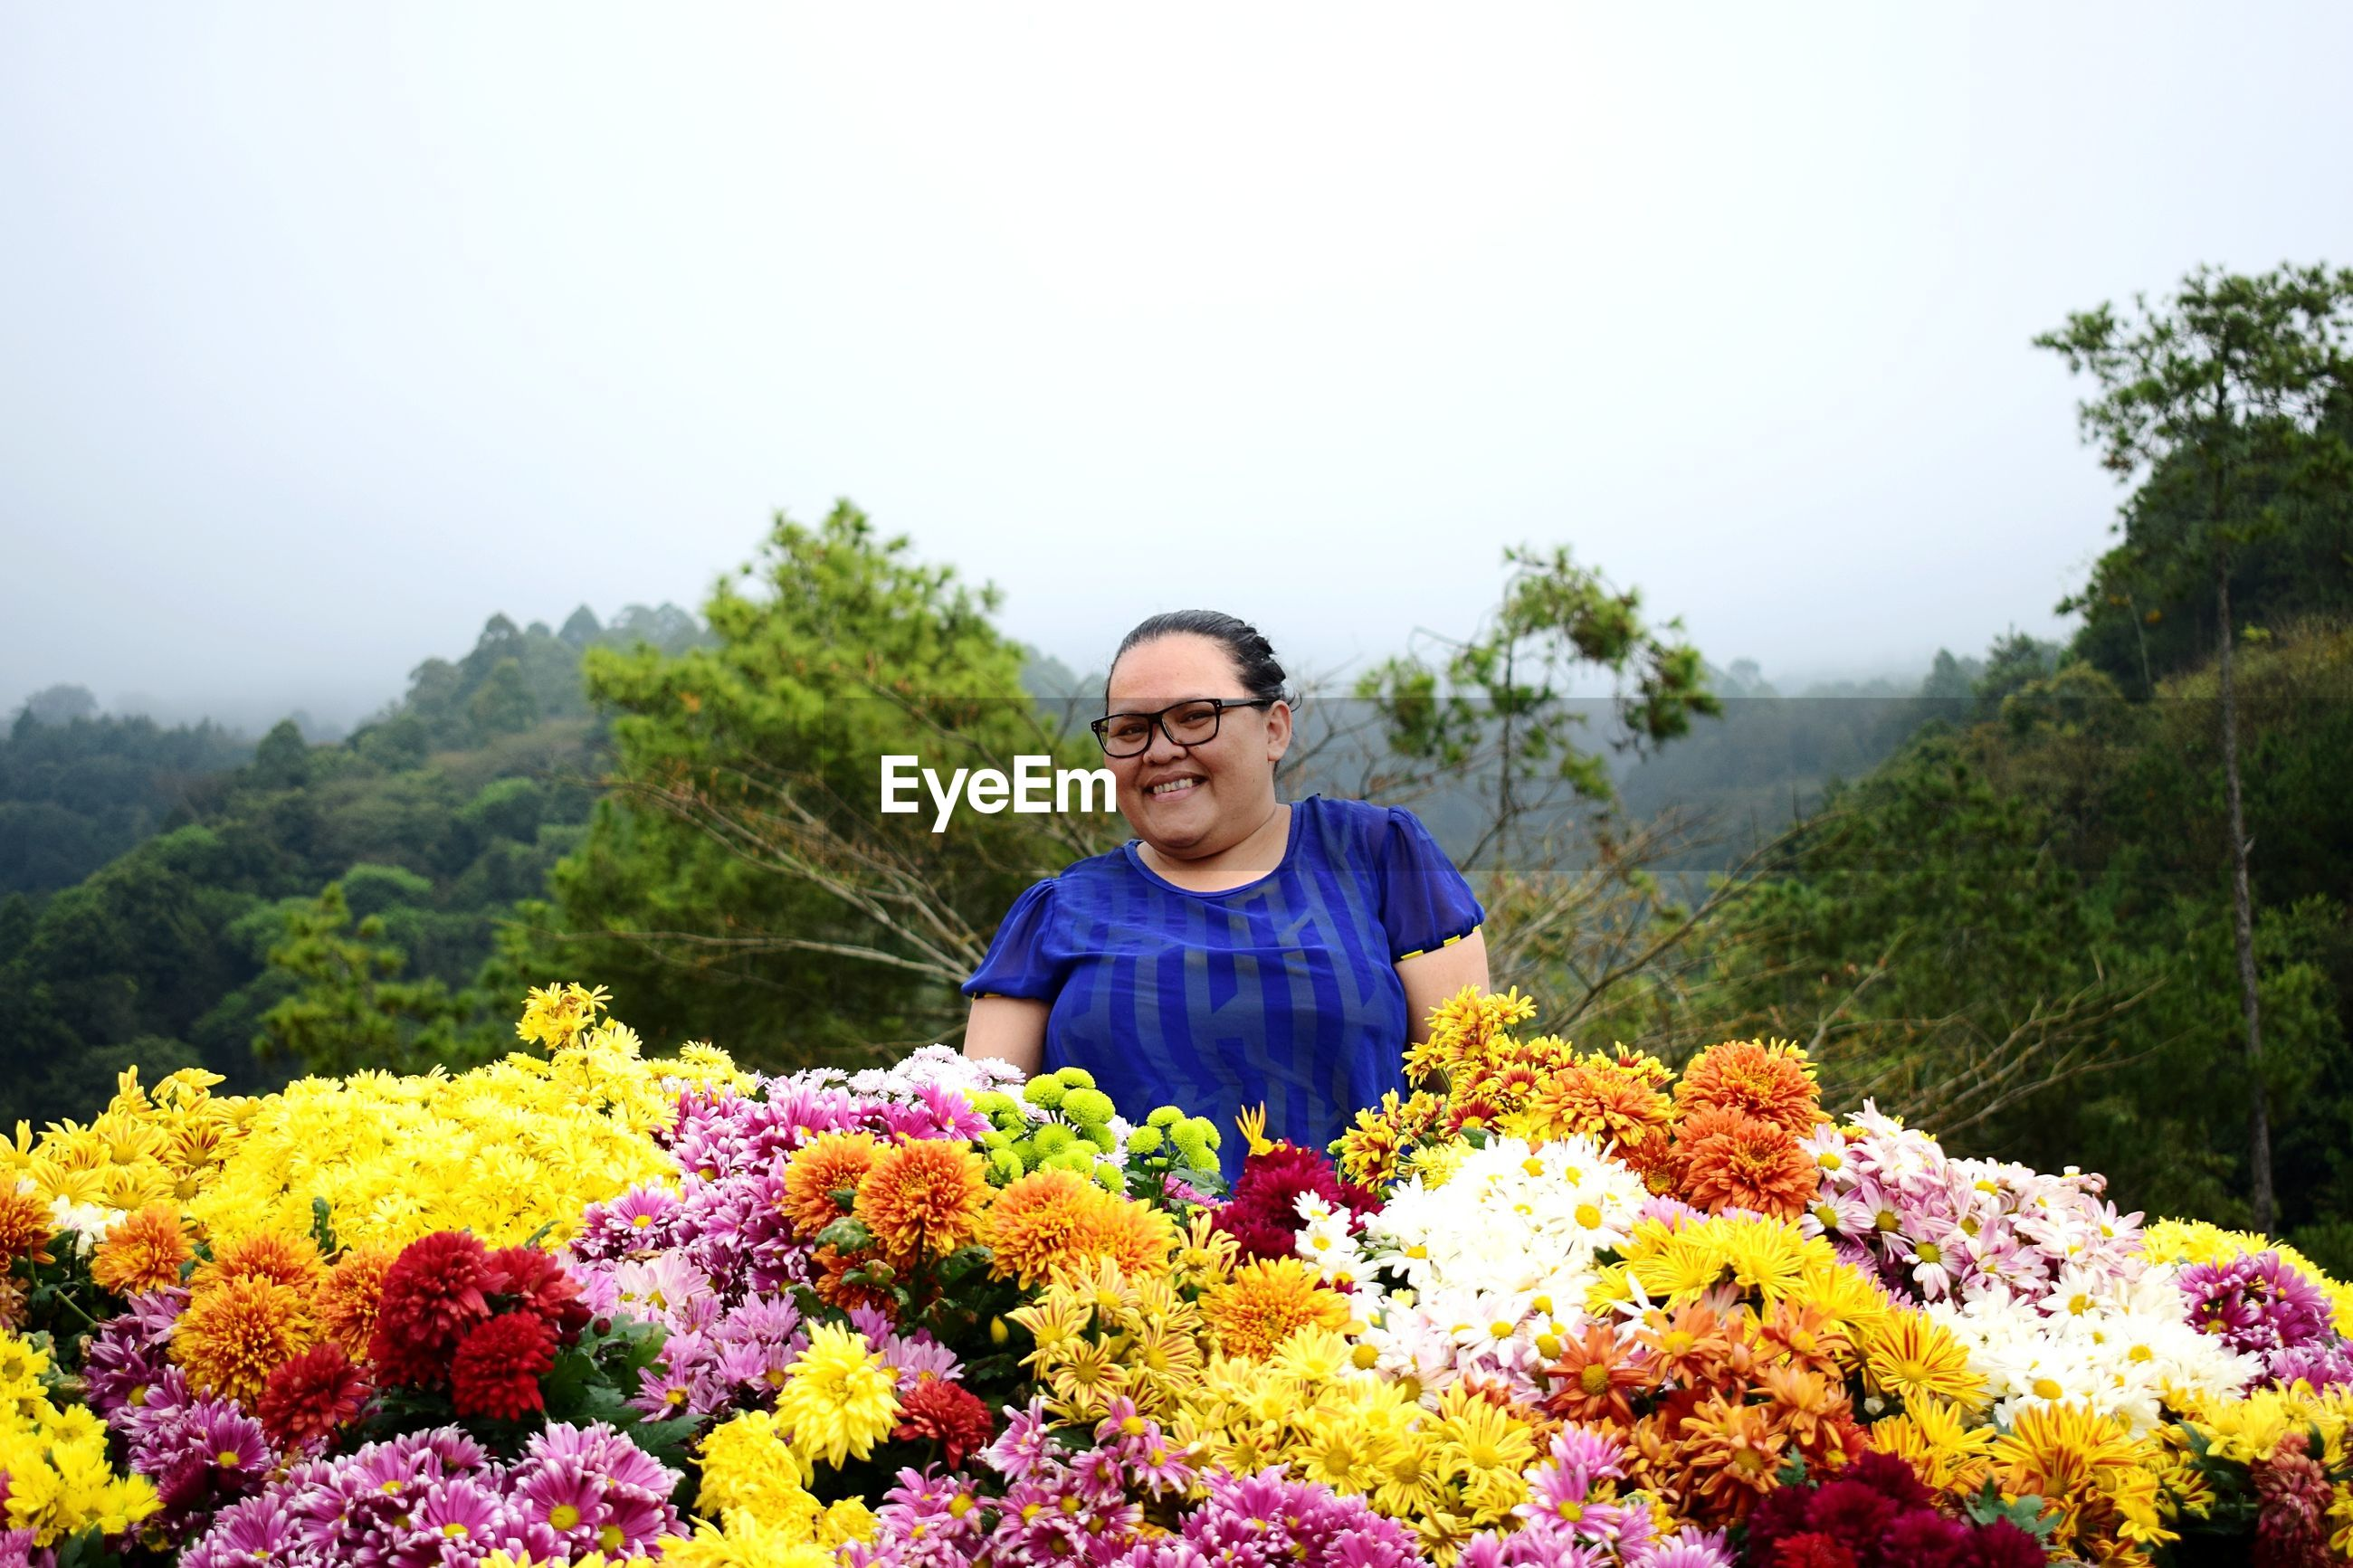 Portrait of smiling woman with various flowers against sky